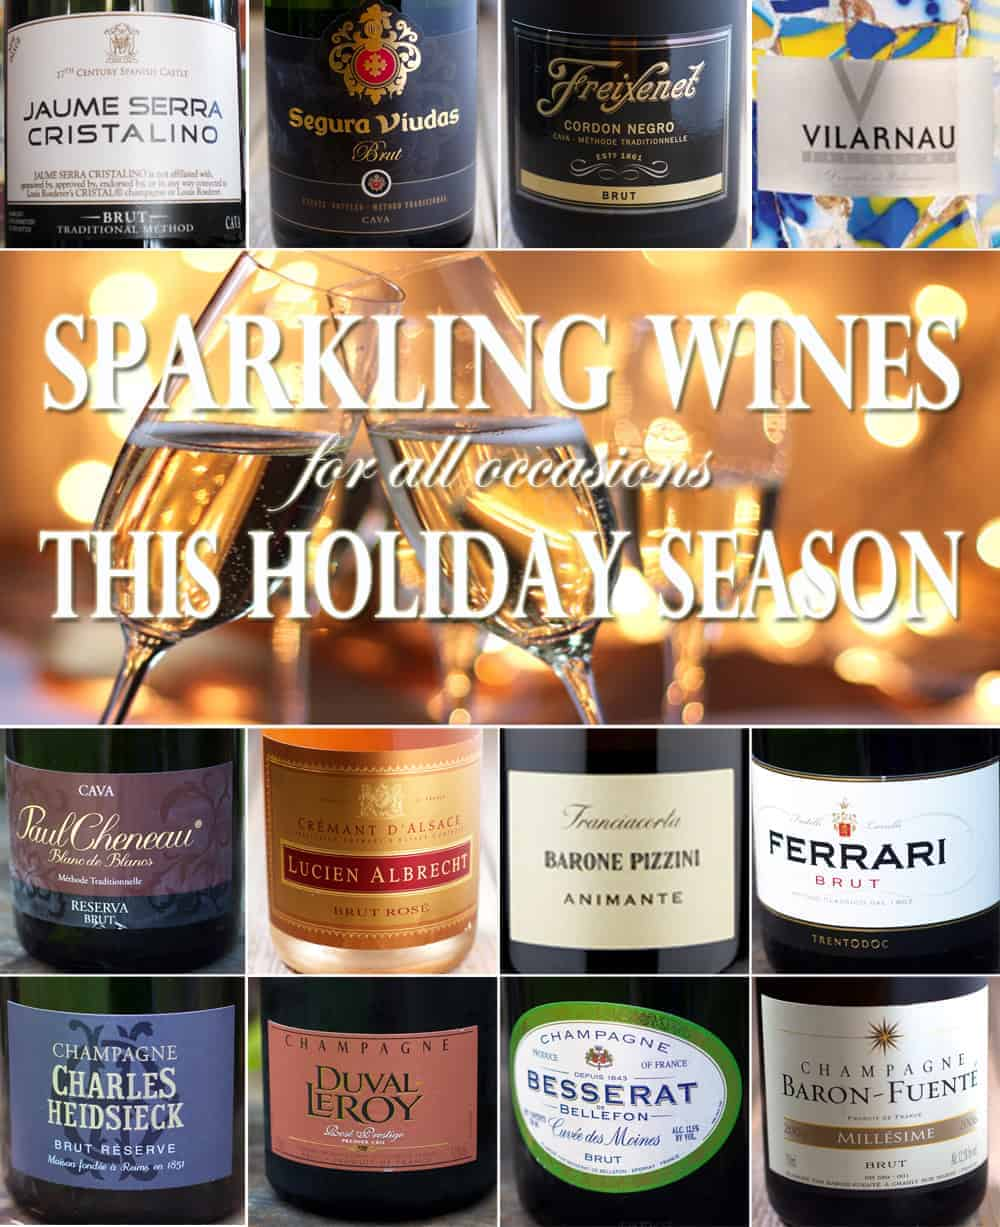 Sparkling wines for all occasions this holiday season. Whether you are hosting a large party or looking for an elegant New Year's Champagne, we've got recommendations from $5 to $80. There's a bubbly for everybody here!